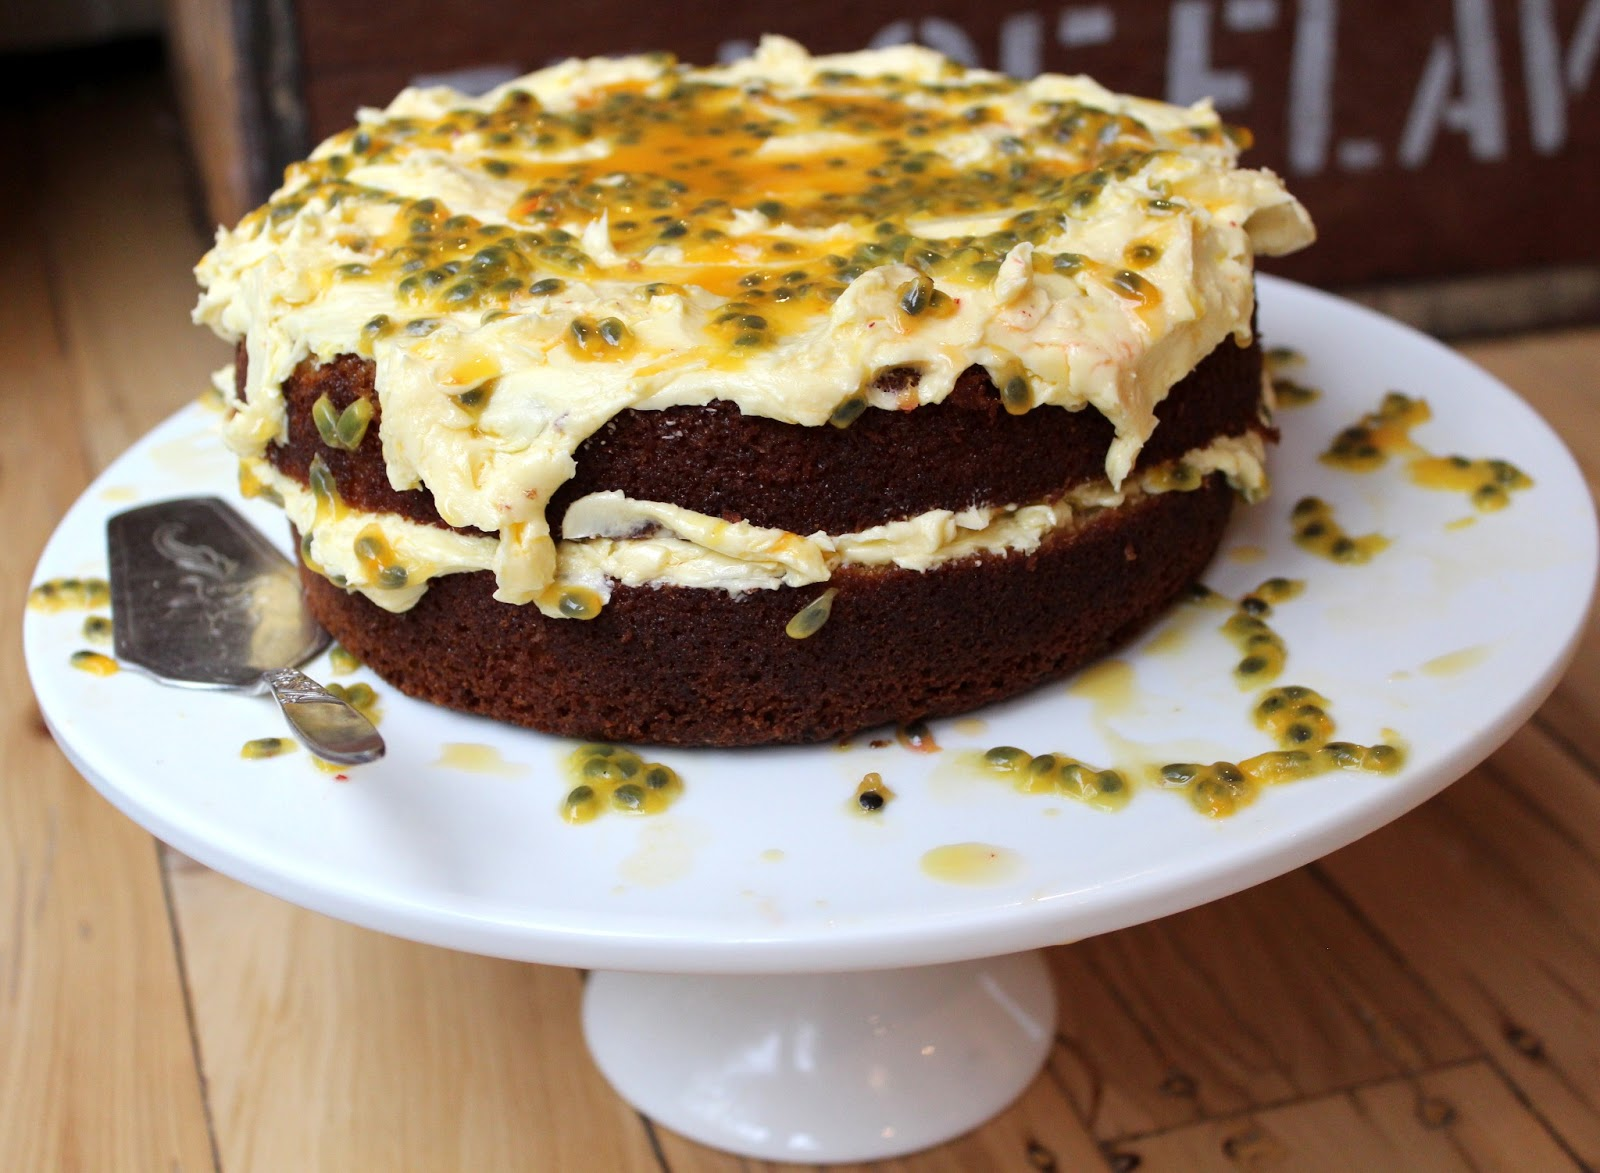 Easy Cake No Icing: Coconut Cake With Passionfruit Butter Frosting